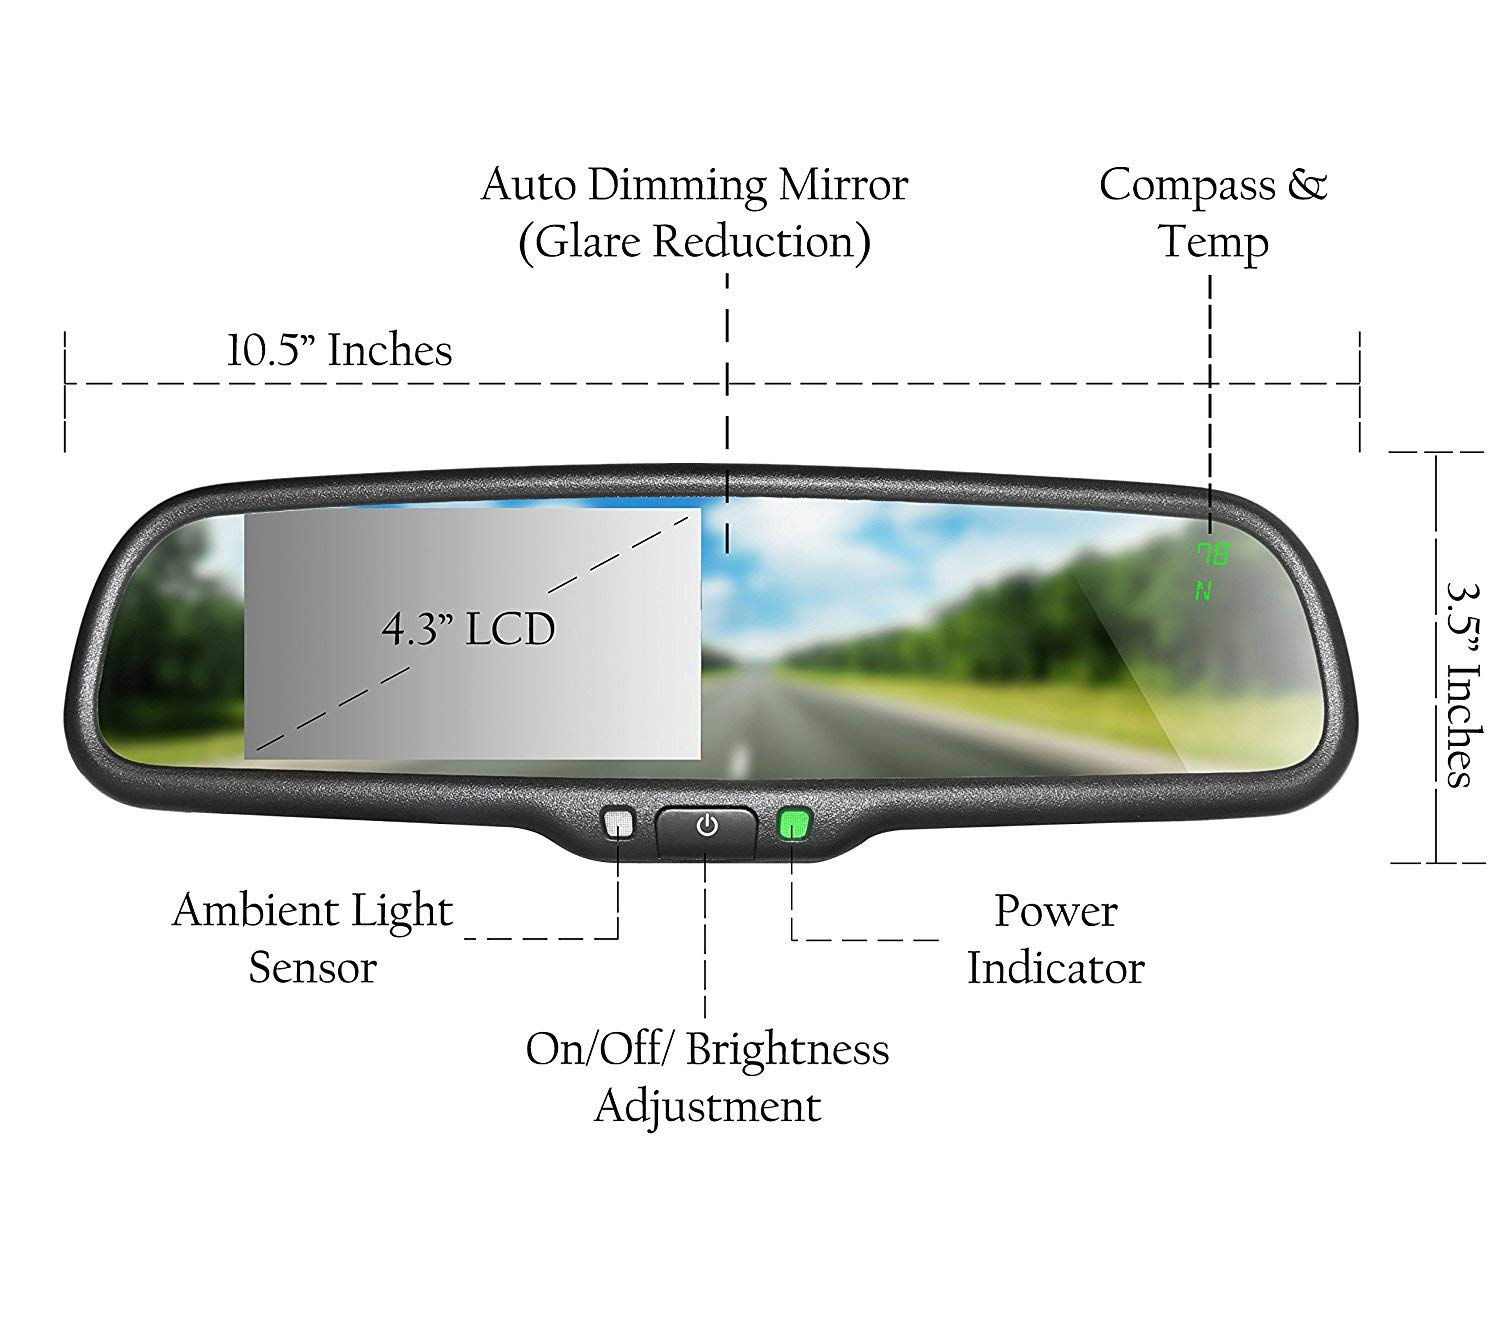 Auto Dimming Mirror Master Tailgaters OEM Rear View Mirror with Ultra Bright 4.3 Auto Adjusting Brightness LCD Universal Fit Compass /& Temperature Complete Replacement MR-43-A2DTC